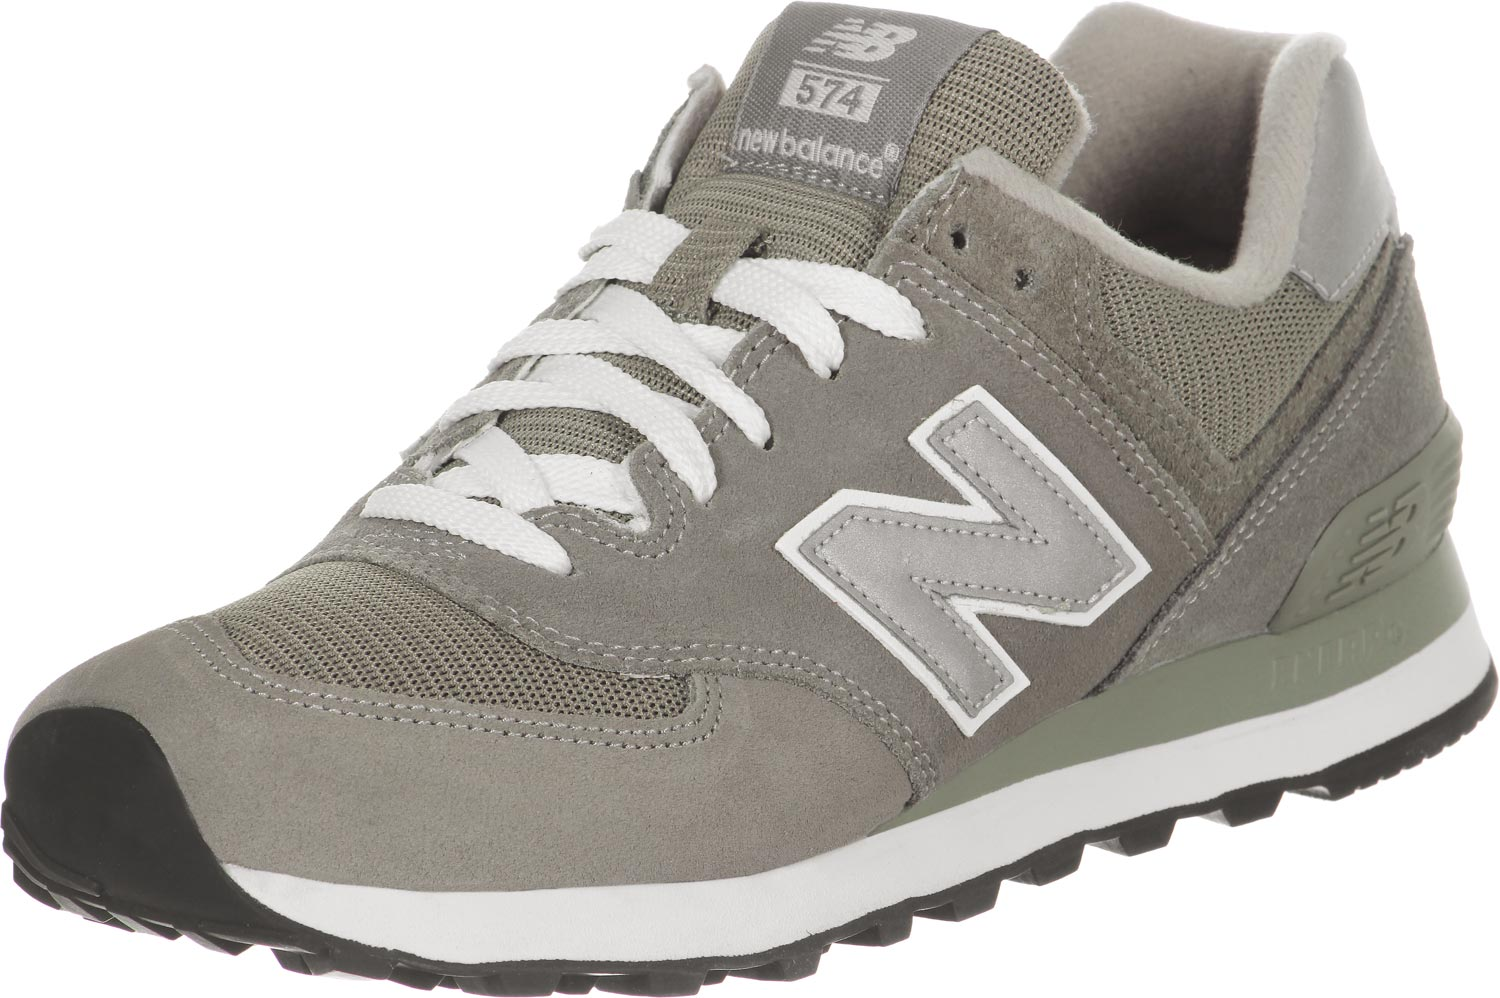 New Balance M574 - Sneakers Low at